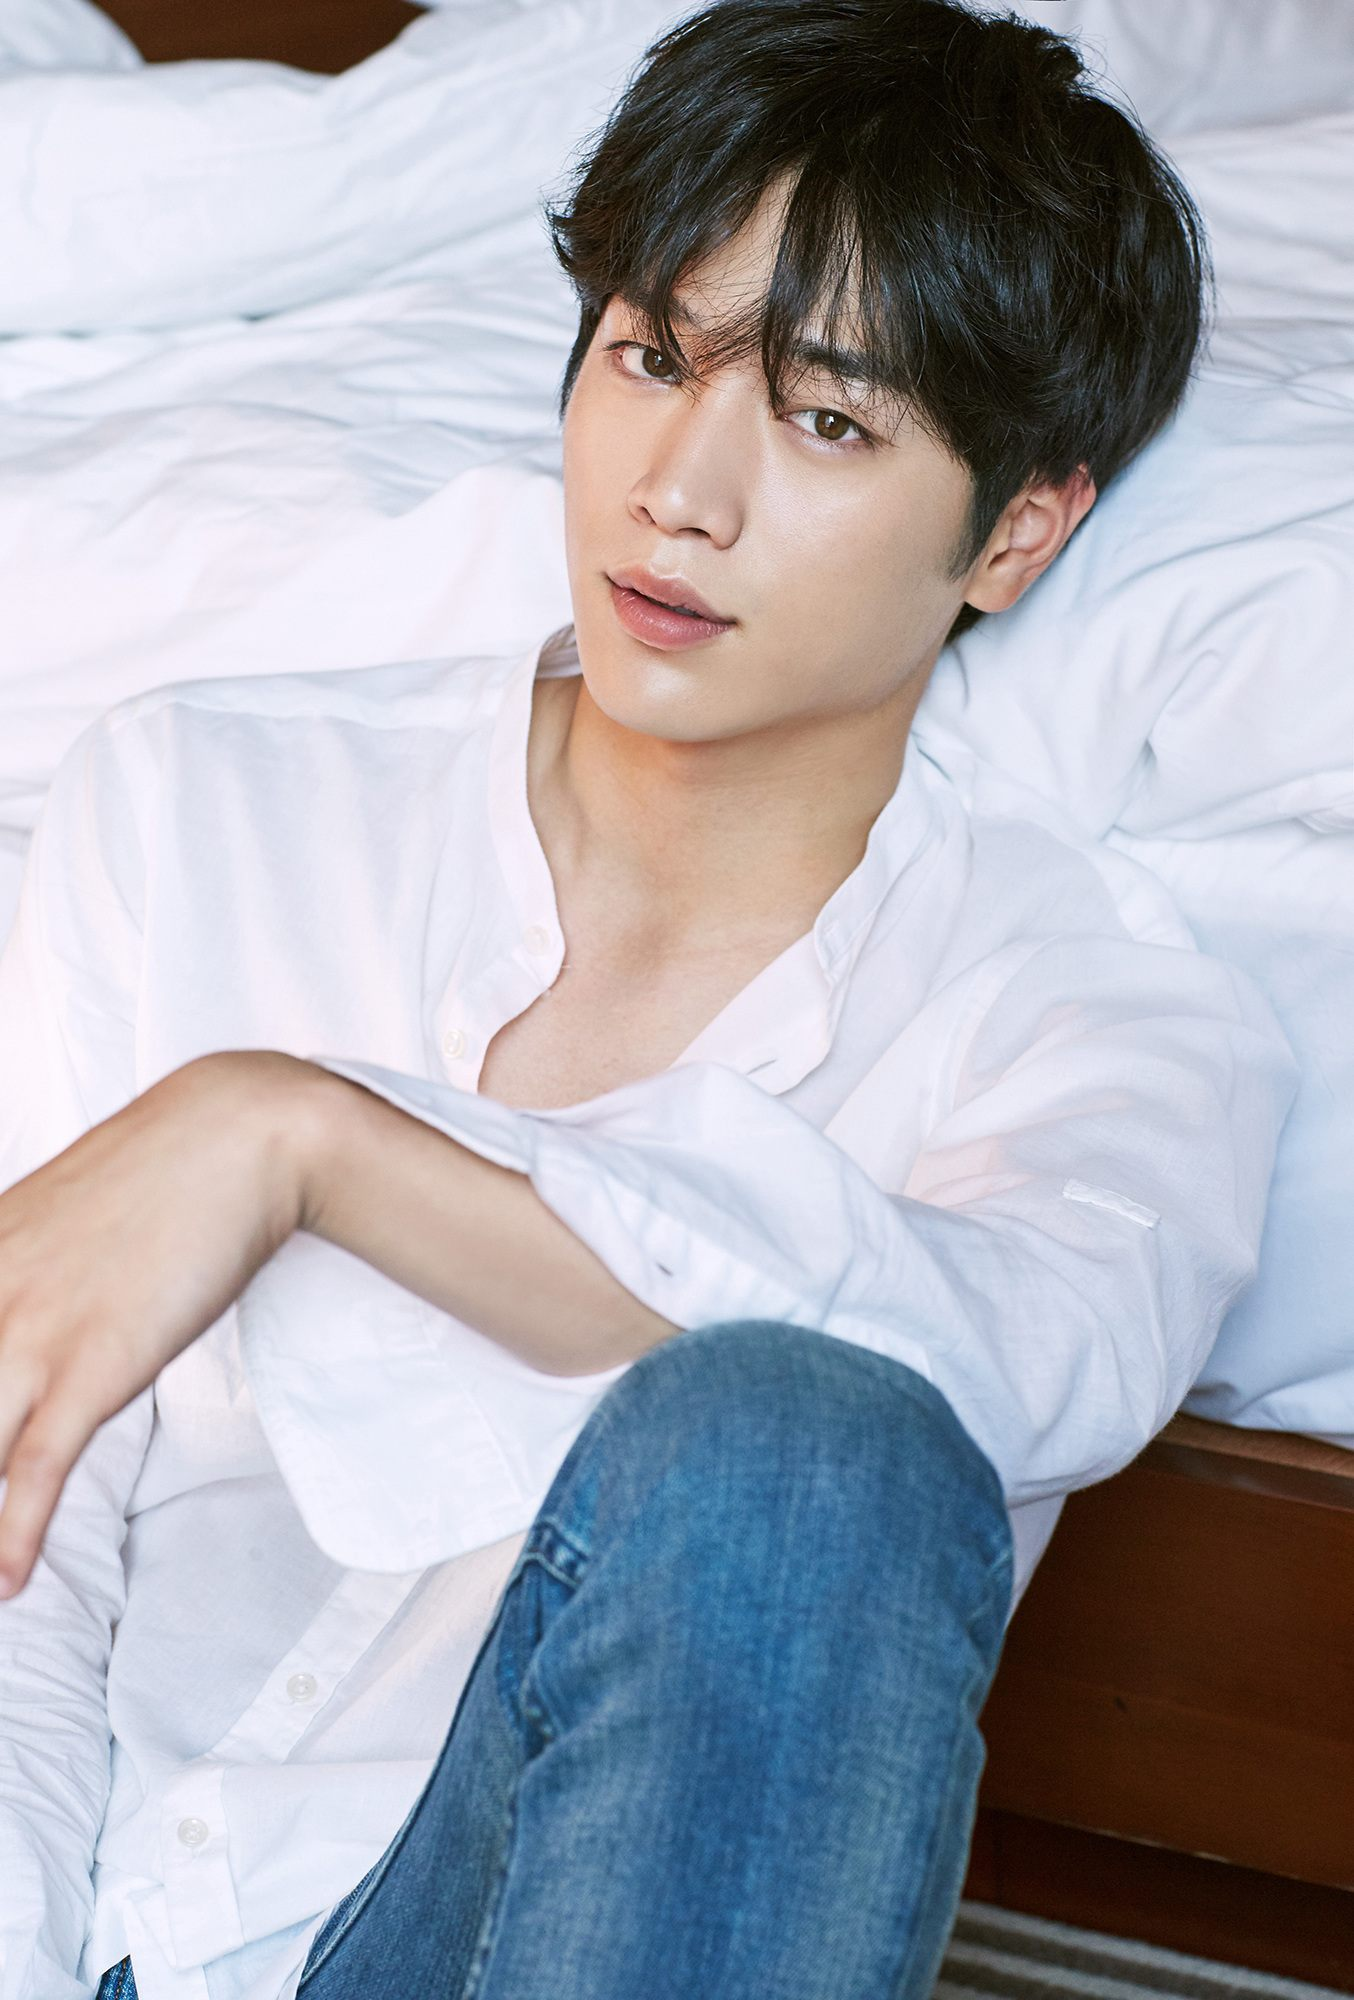 Seo Kang Joon Caught Fans Attention As The Second Male Lead In Cheese Trap Were Quick To Point Our His Perfect Facial Features And Unique Eye